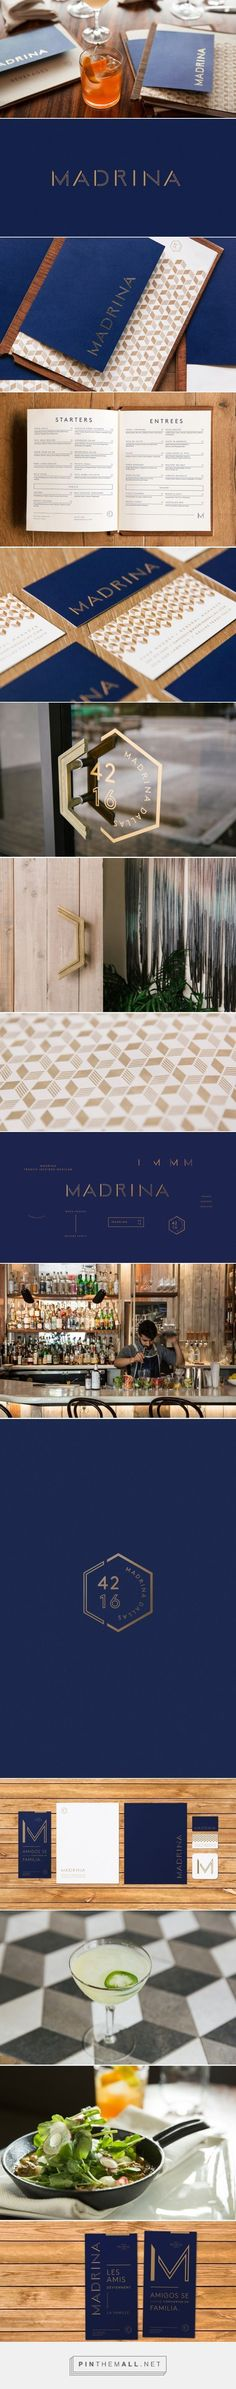 Fivestar Branding Agency – Business Branding and Web Design for Small Business Owners Restaurant Branding, Carta Restaurant, Logo Branding, Deco Restaurant, Restaurant Menu Design, Branding Agency, Stationary Branding, Branding Ideas, Advertising Agency